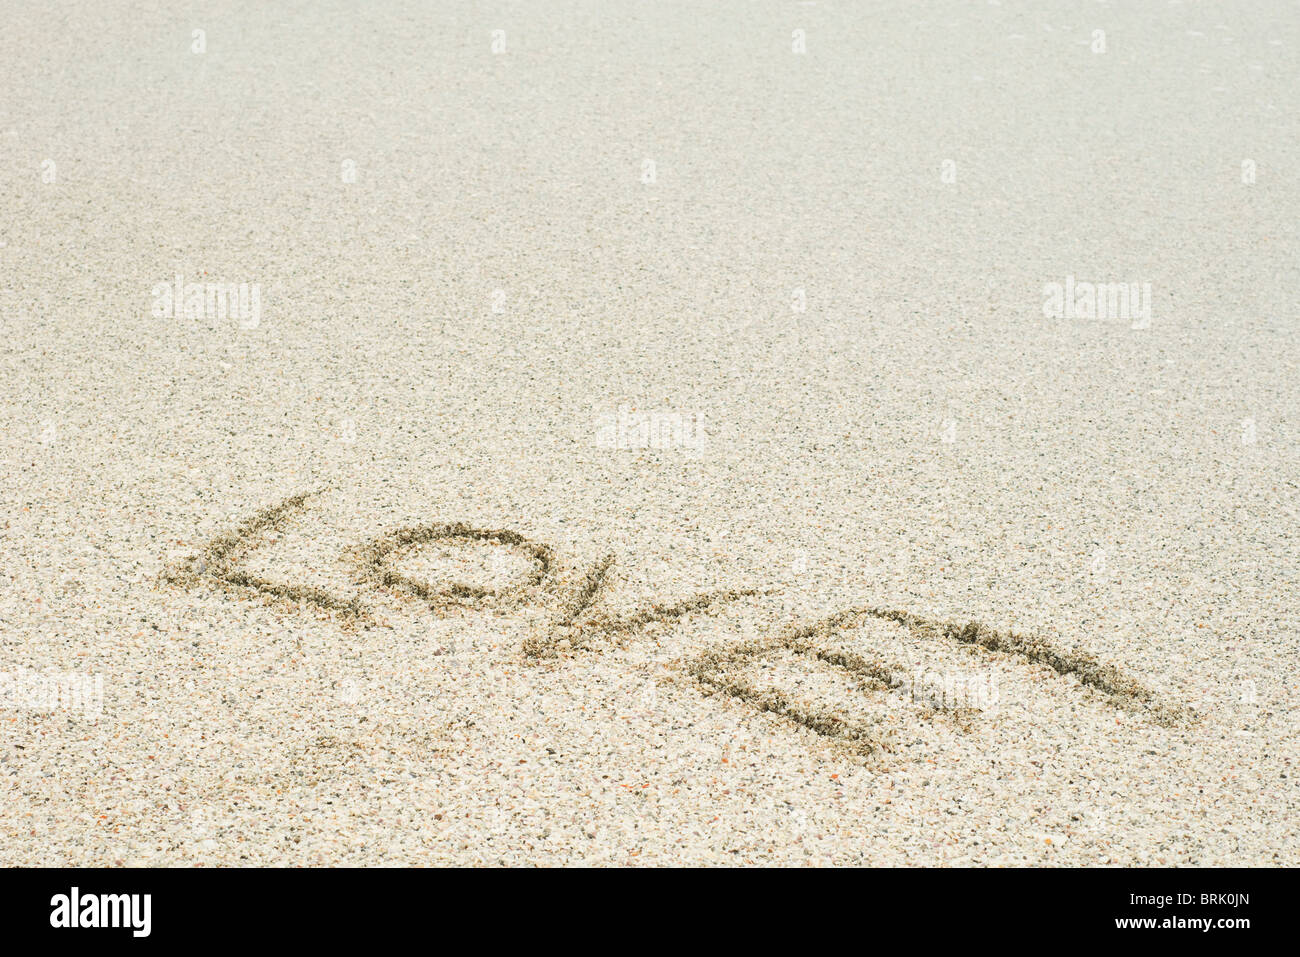 The word 'love' written in sand at the beach - Stock Image